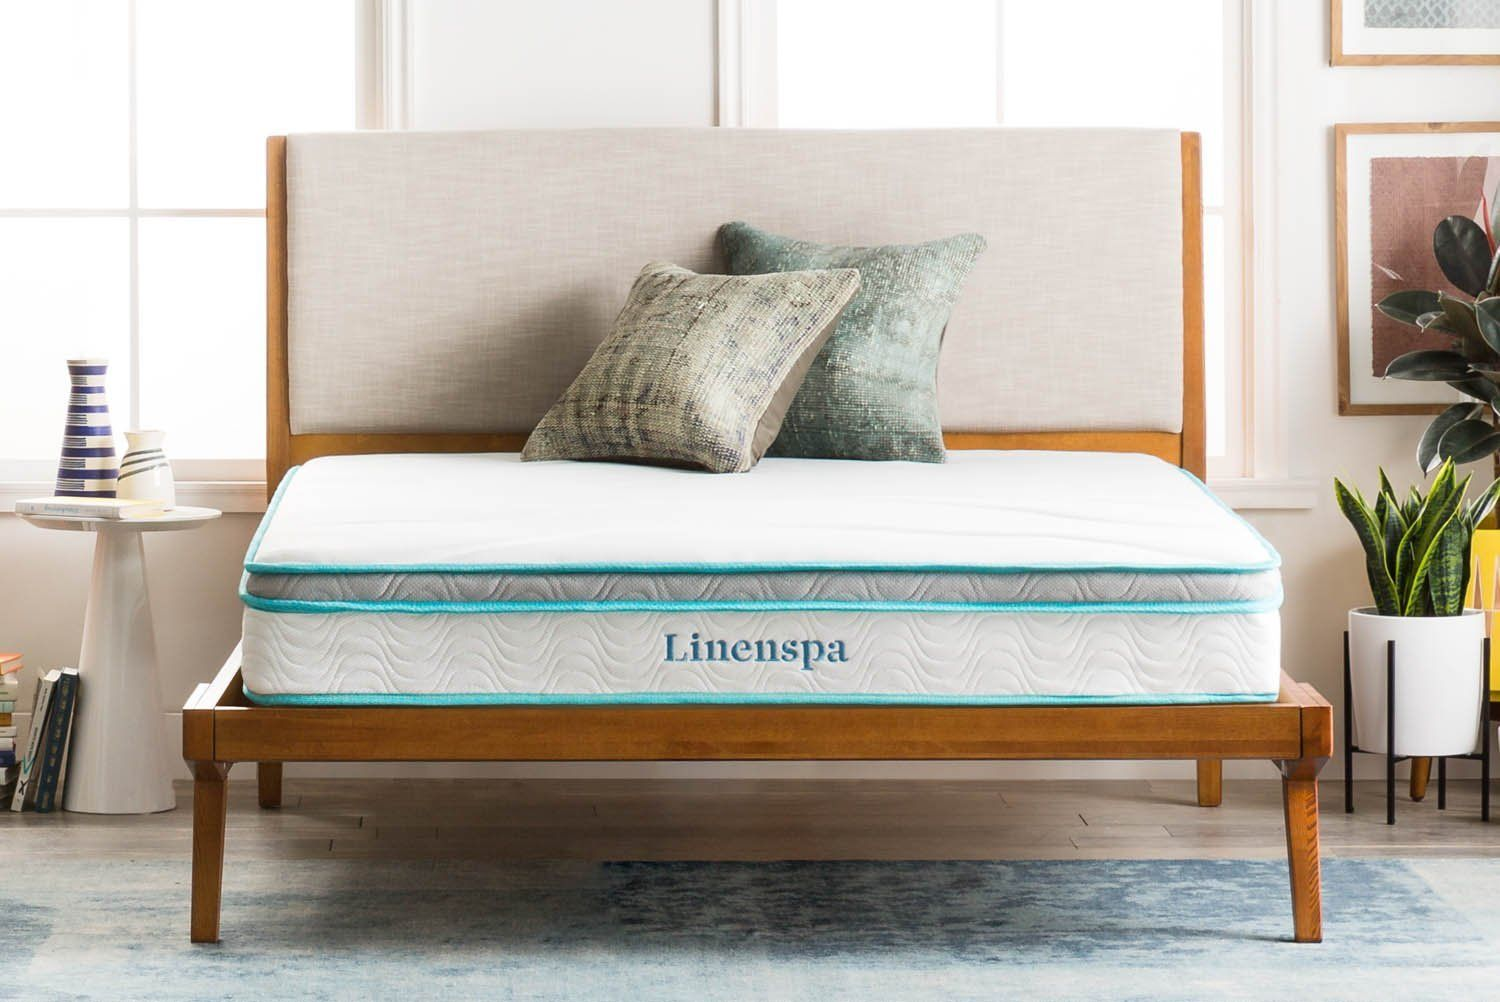 Amazon's Best-Selling Mattress Is Only $95 and People Are Obsessed with It